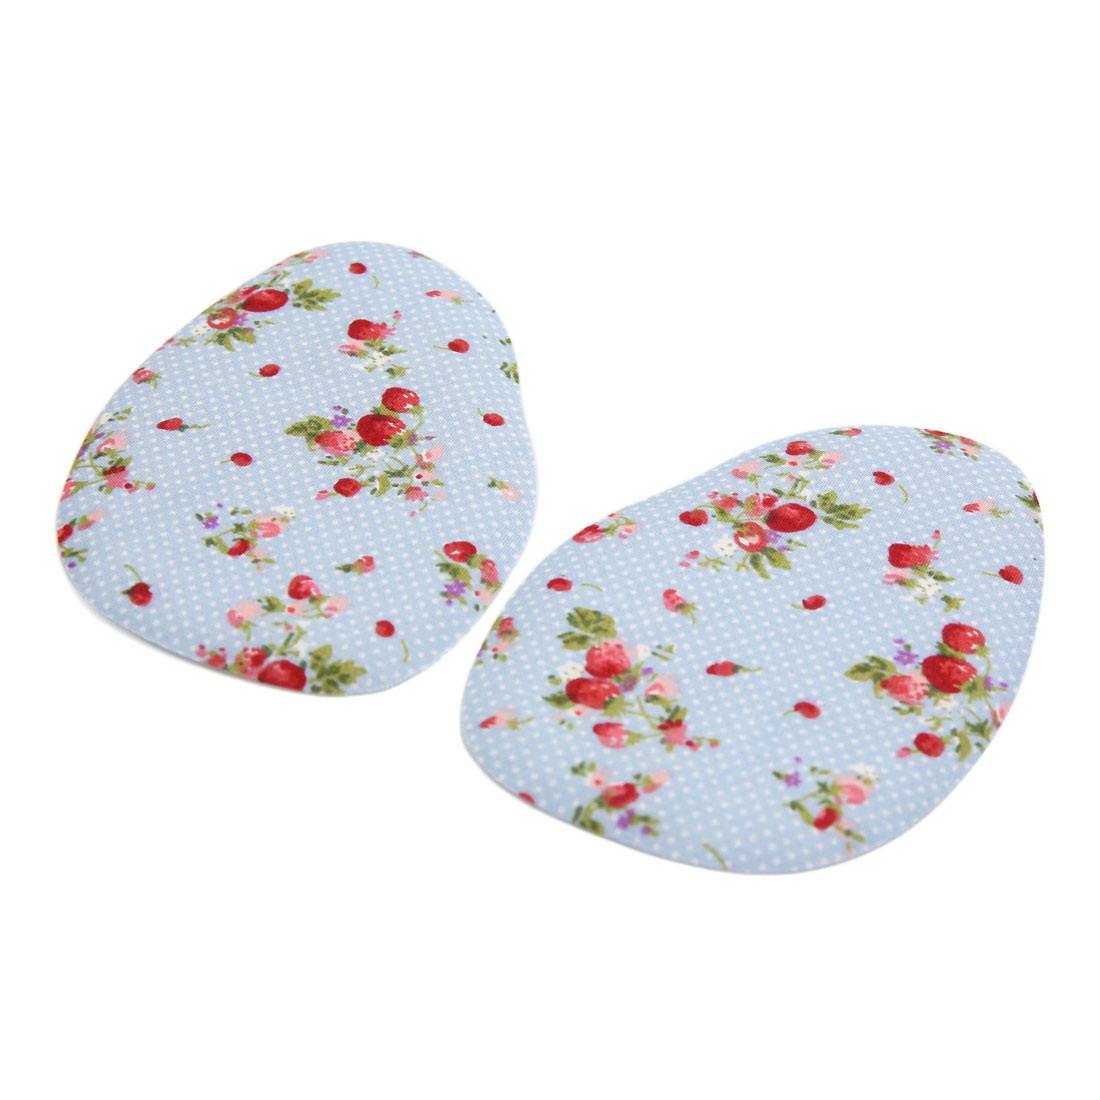 Image of 1 Pair Blue Silicone Floral Pattern High Heel Comfy Forefoot Pad Foot Cushion Insole